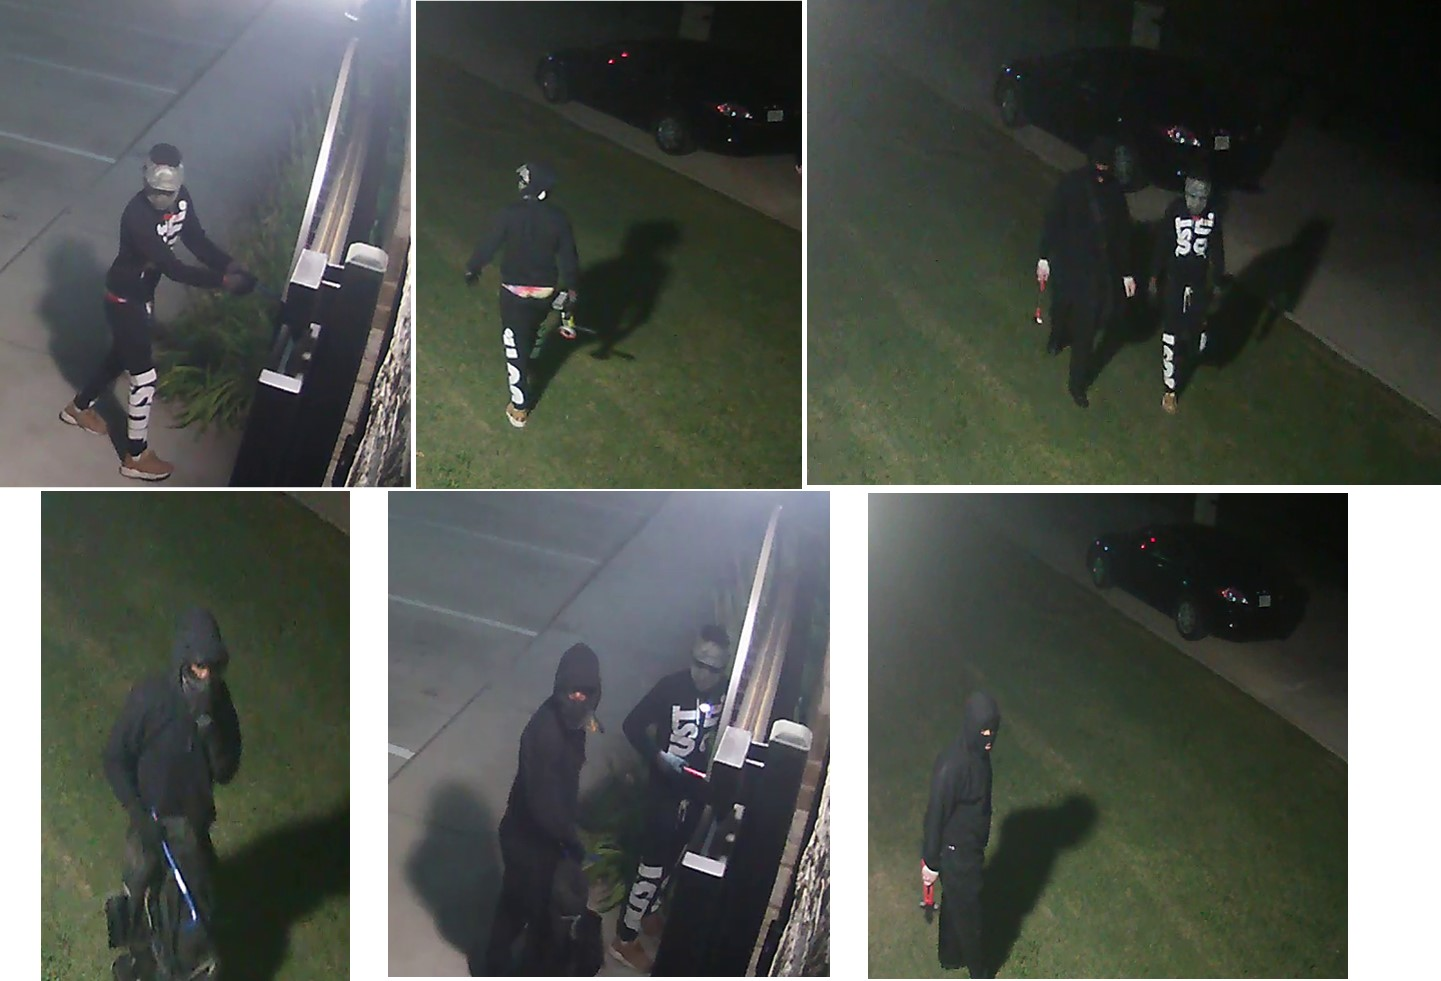 Three masked suspects, dressed in all black, wanted for breaking into Marksmen Firearms